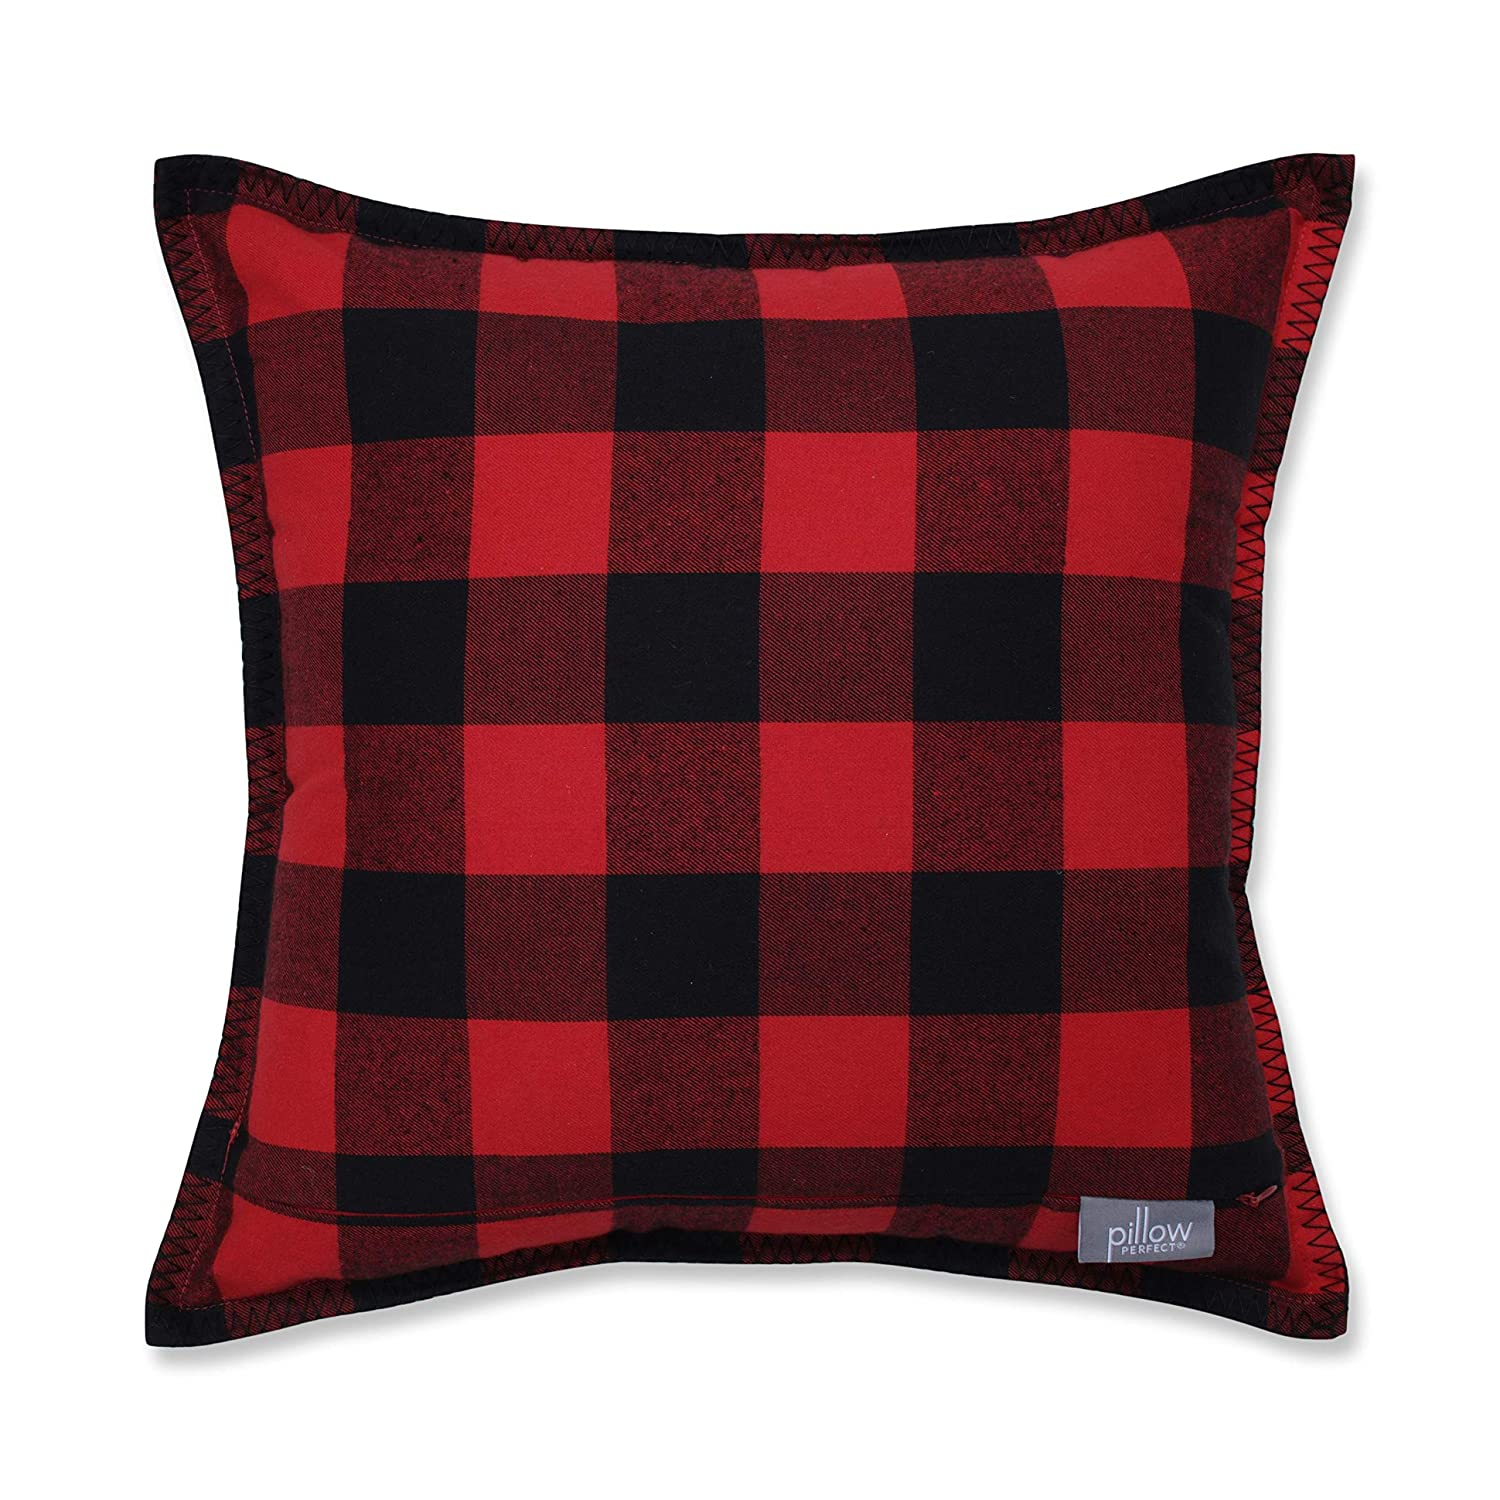 Off White Black Pillow Perfect Buffalo Plaid Appliqued Initial A with Blanket Stitch Edge Decorative Pillow 17 Red